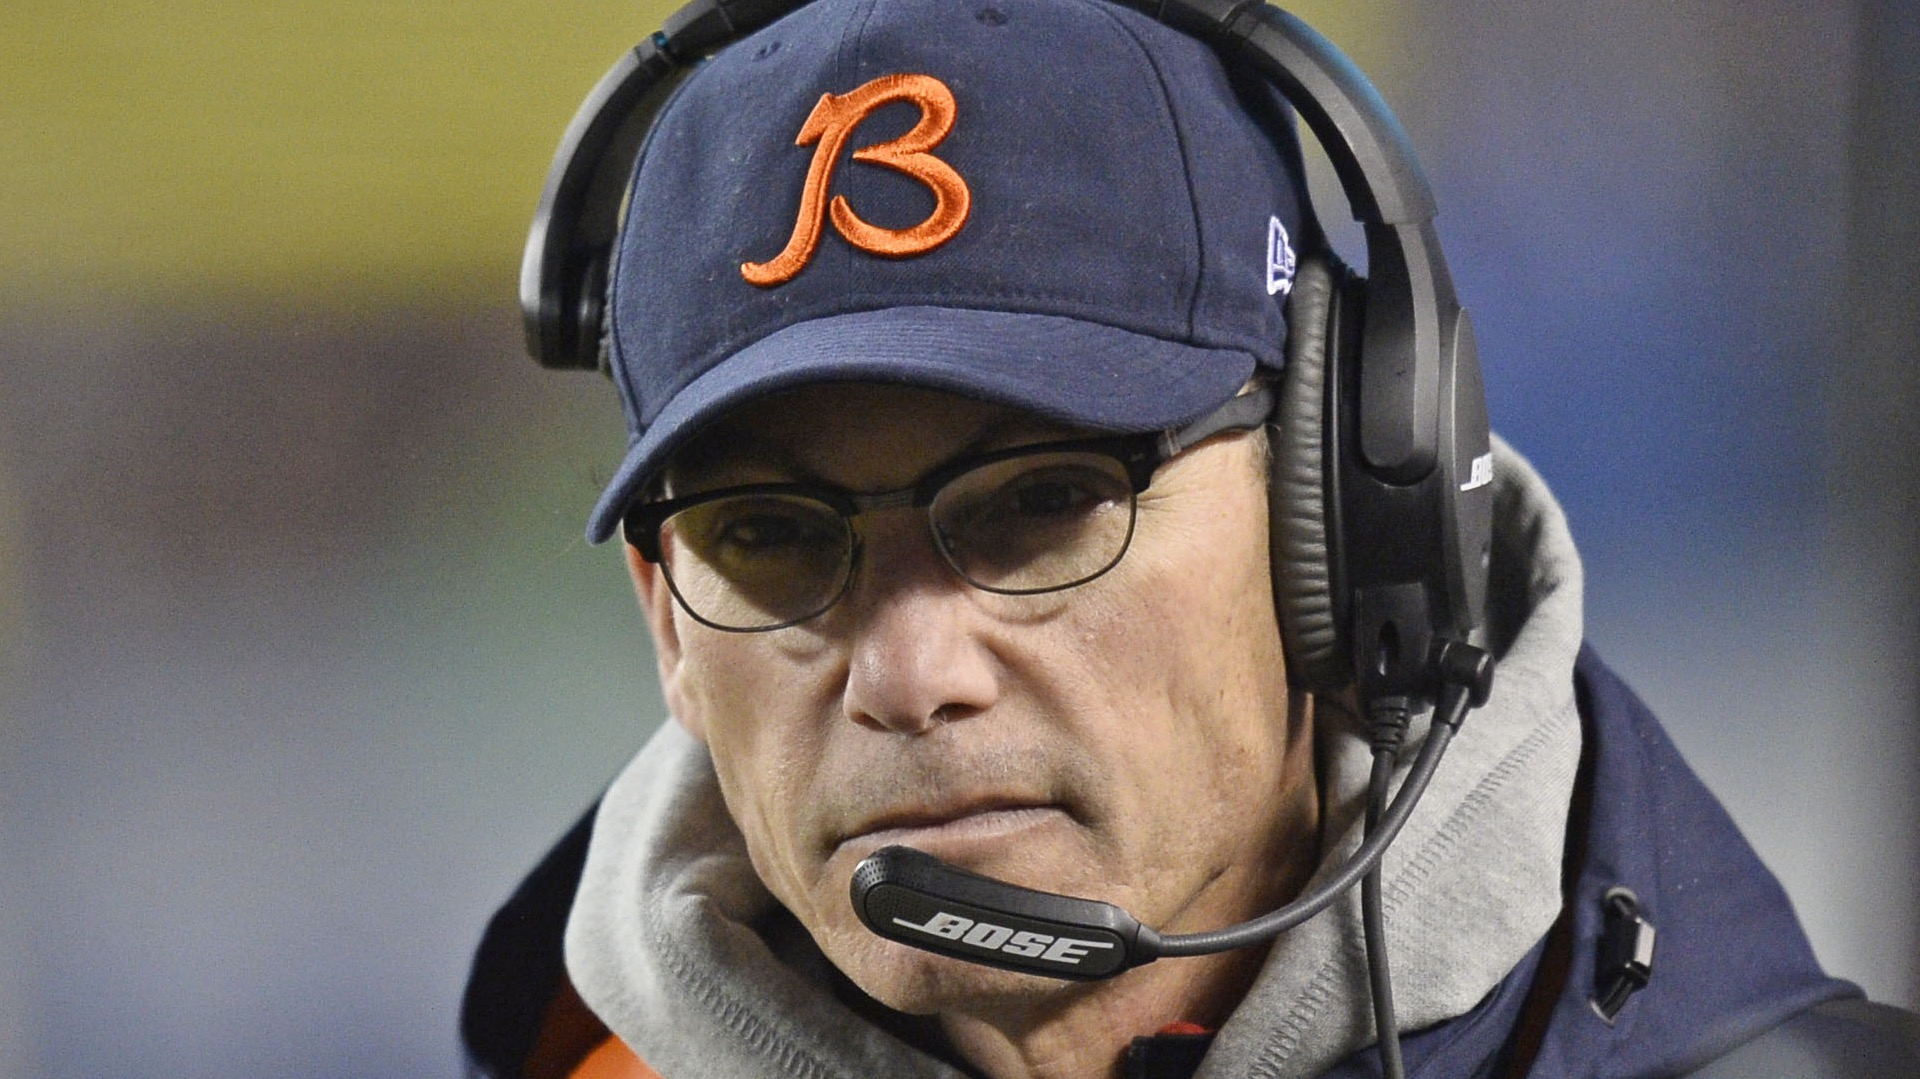 Trestman-marc-1515-us-news-getty-ftr_7r45sfb2ss671wx648d9fgwwc